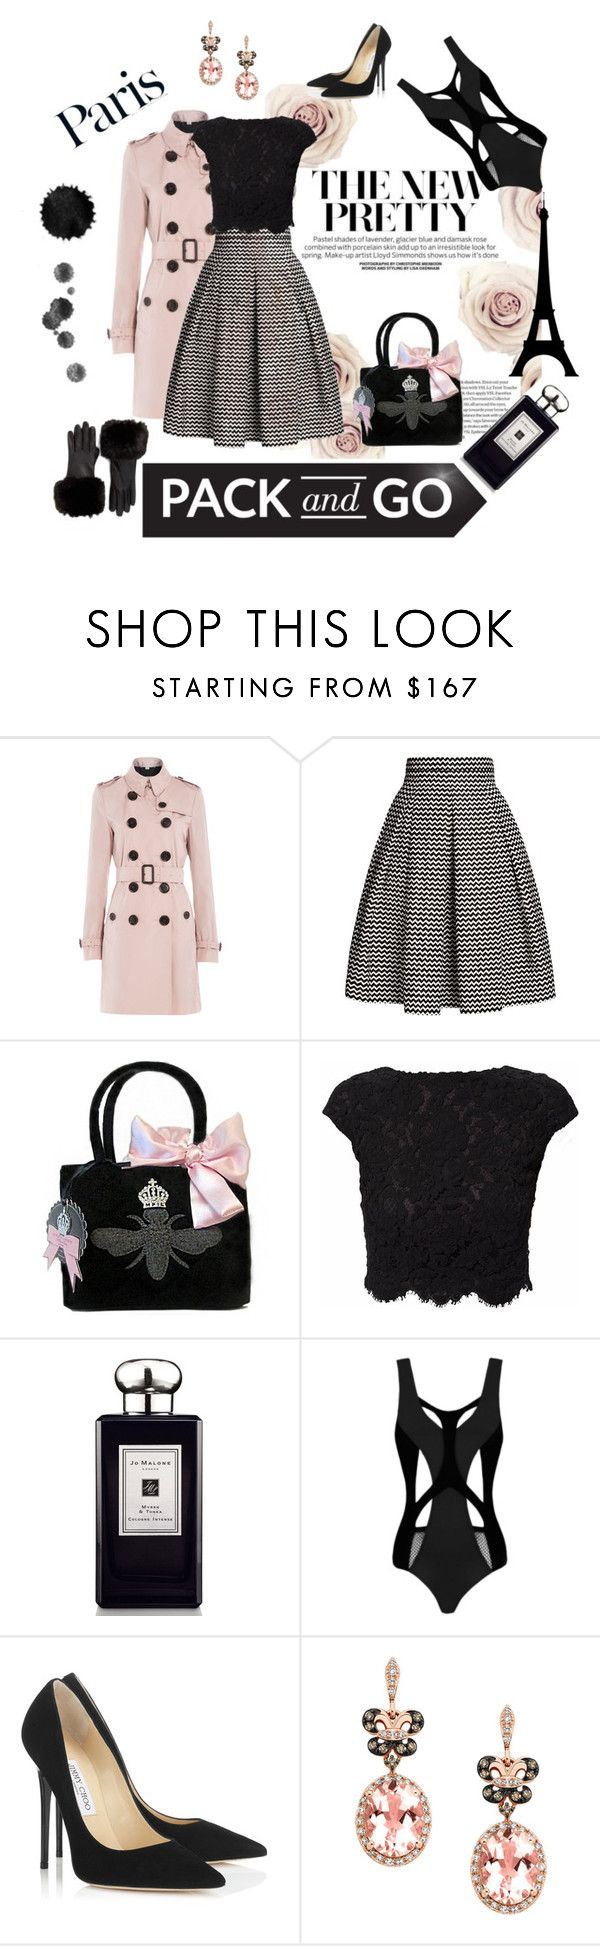 """Pack and go to Paris with class"" by celinnnne ❤ liked on Polyvore featuring Burberry, Rumour London, My Flat In London, WtR London, Jo Malone, MOEVA, Ted Baker, Jimmy Choo, Effy Jewelry and rose"